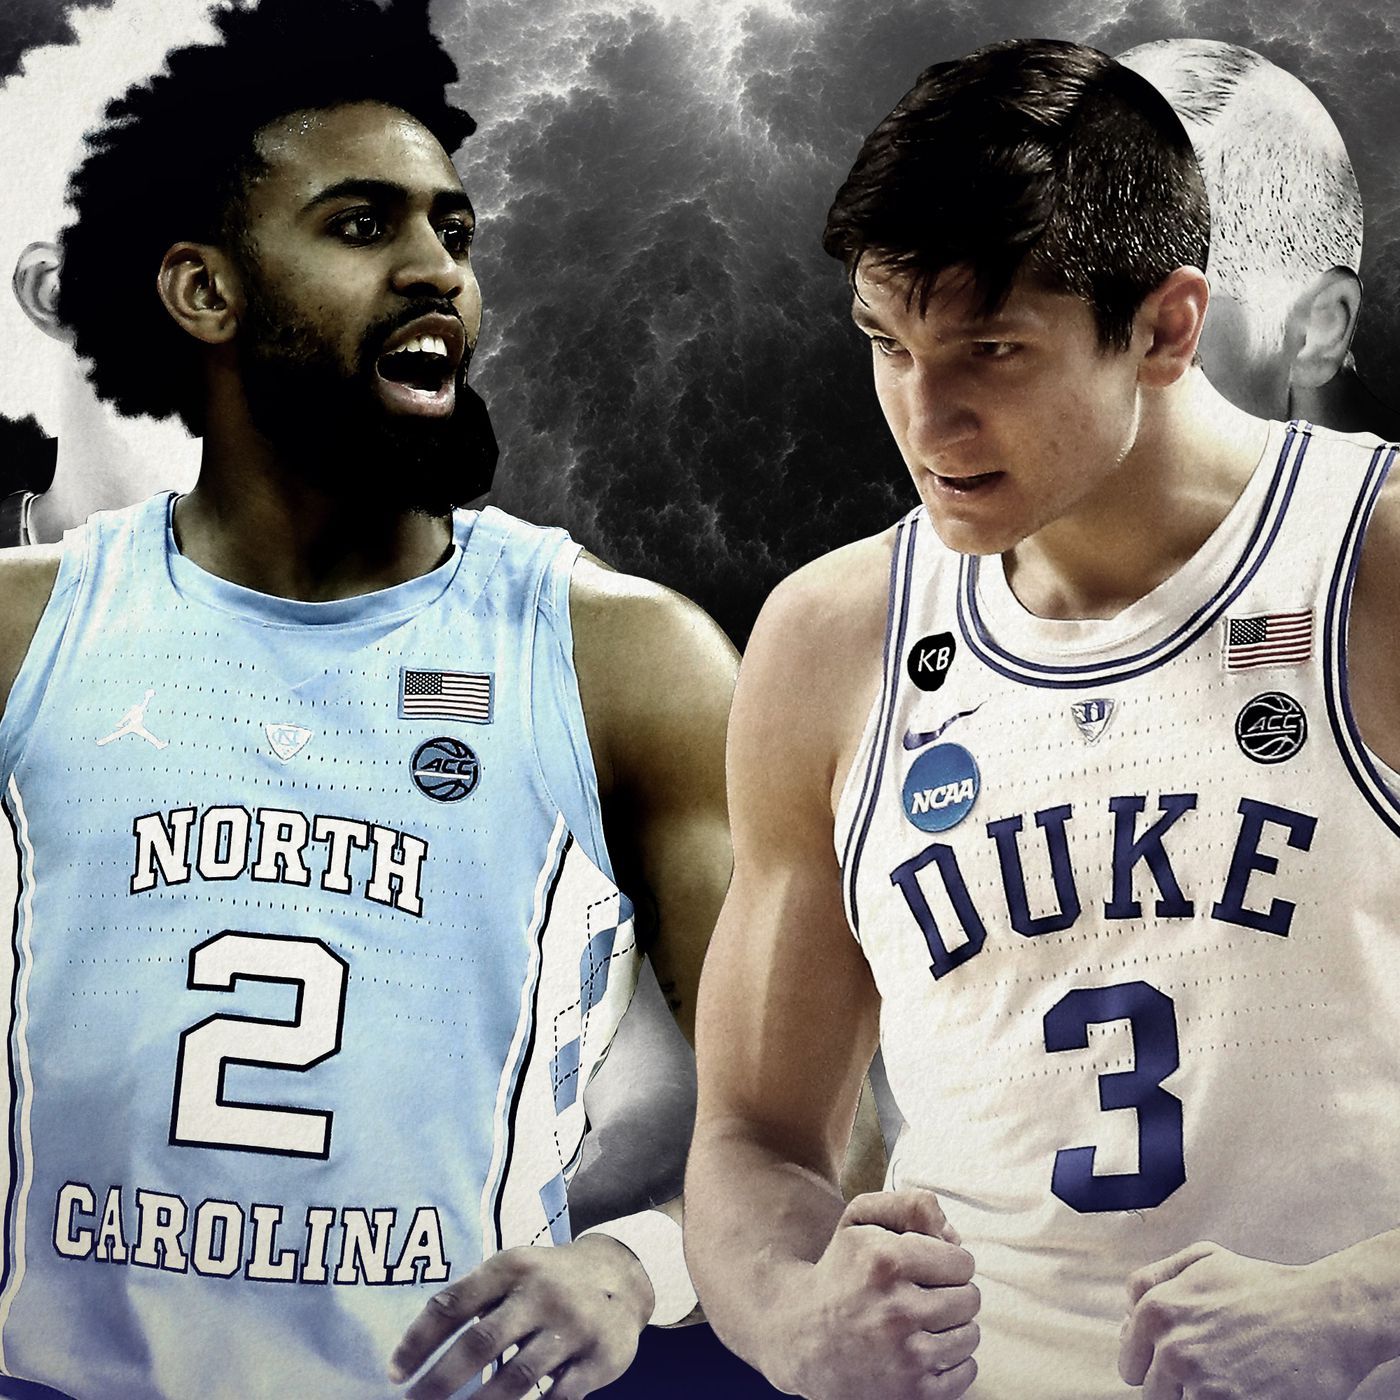 a73fd05d84b Joel Berry II, Grayson Allen, and the Paths That Shaped a Rivalry - The  Ringer